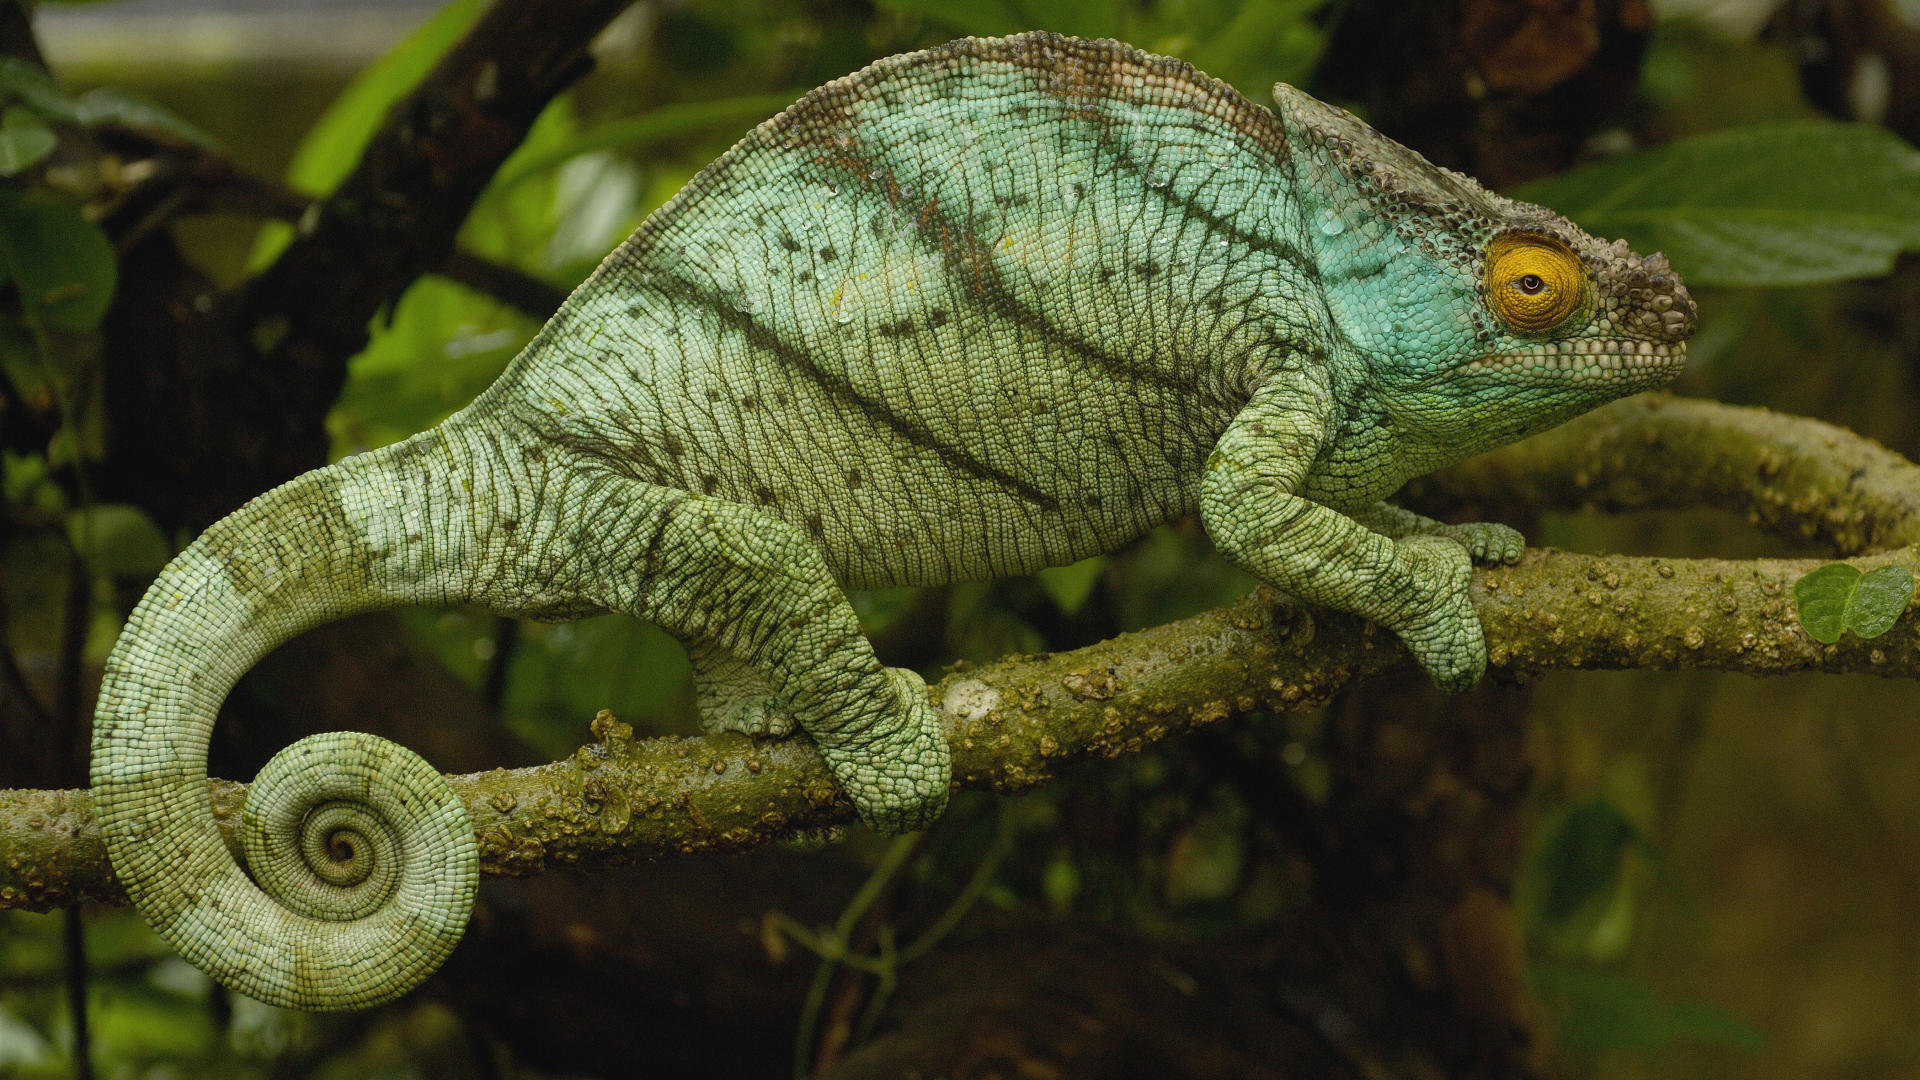 Free download Chameleon wallpaper ID:462549 hd 1920x1080 for desktop